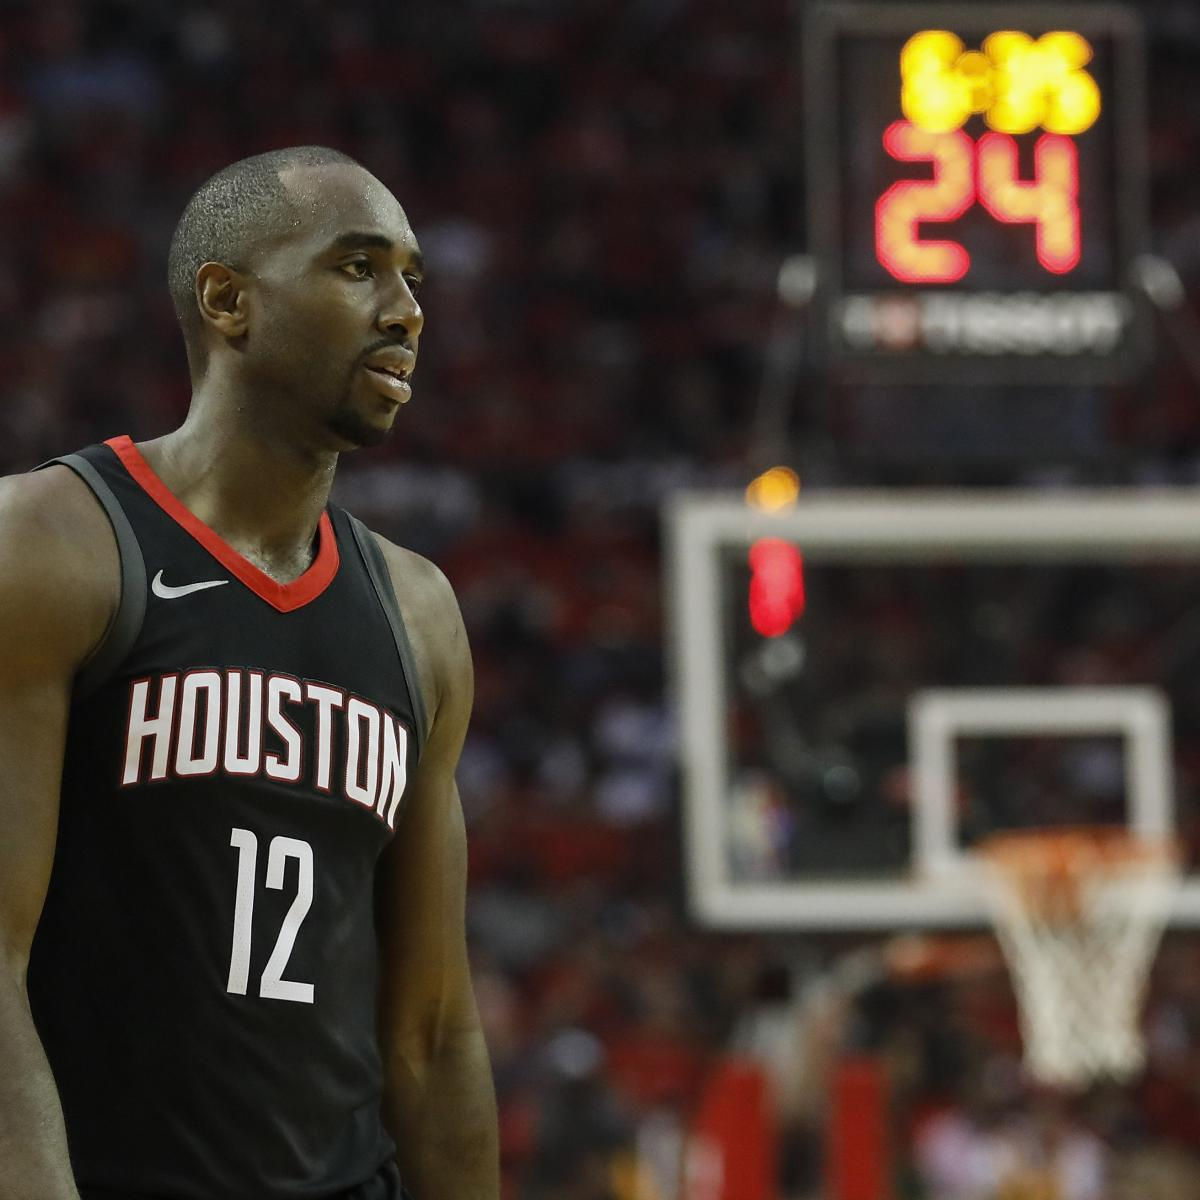 Report: Luc Mbah a Moute Agrees to Clippers Contract After 1 Year with Rockets